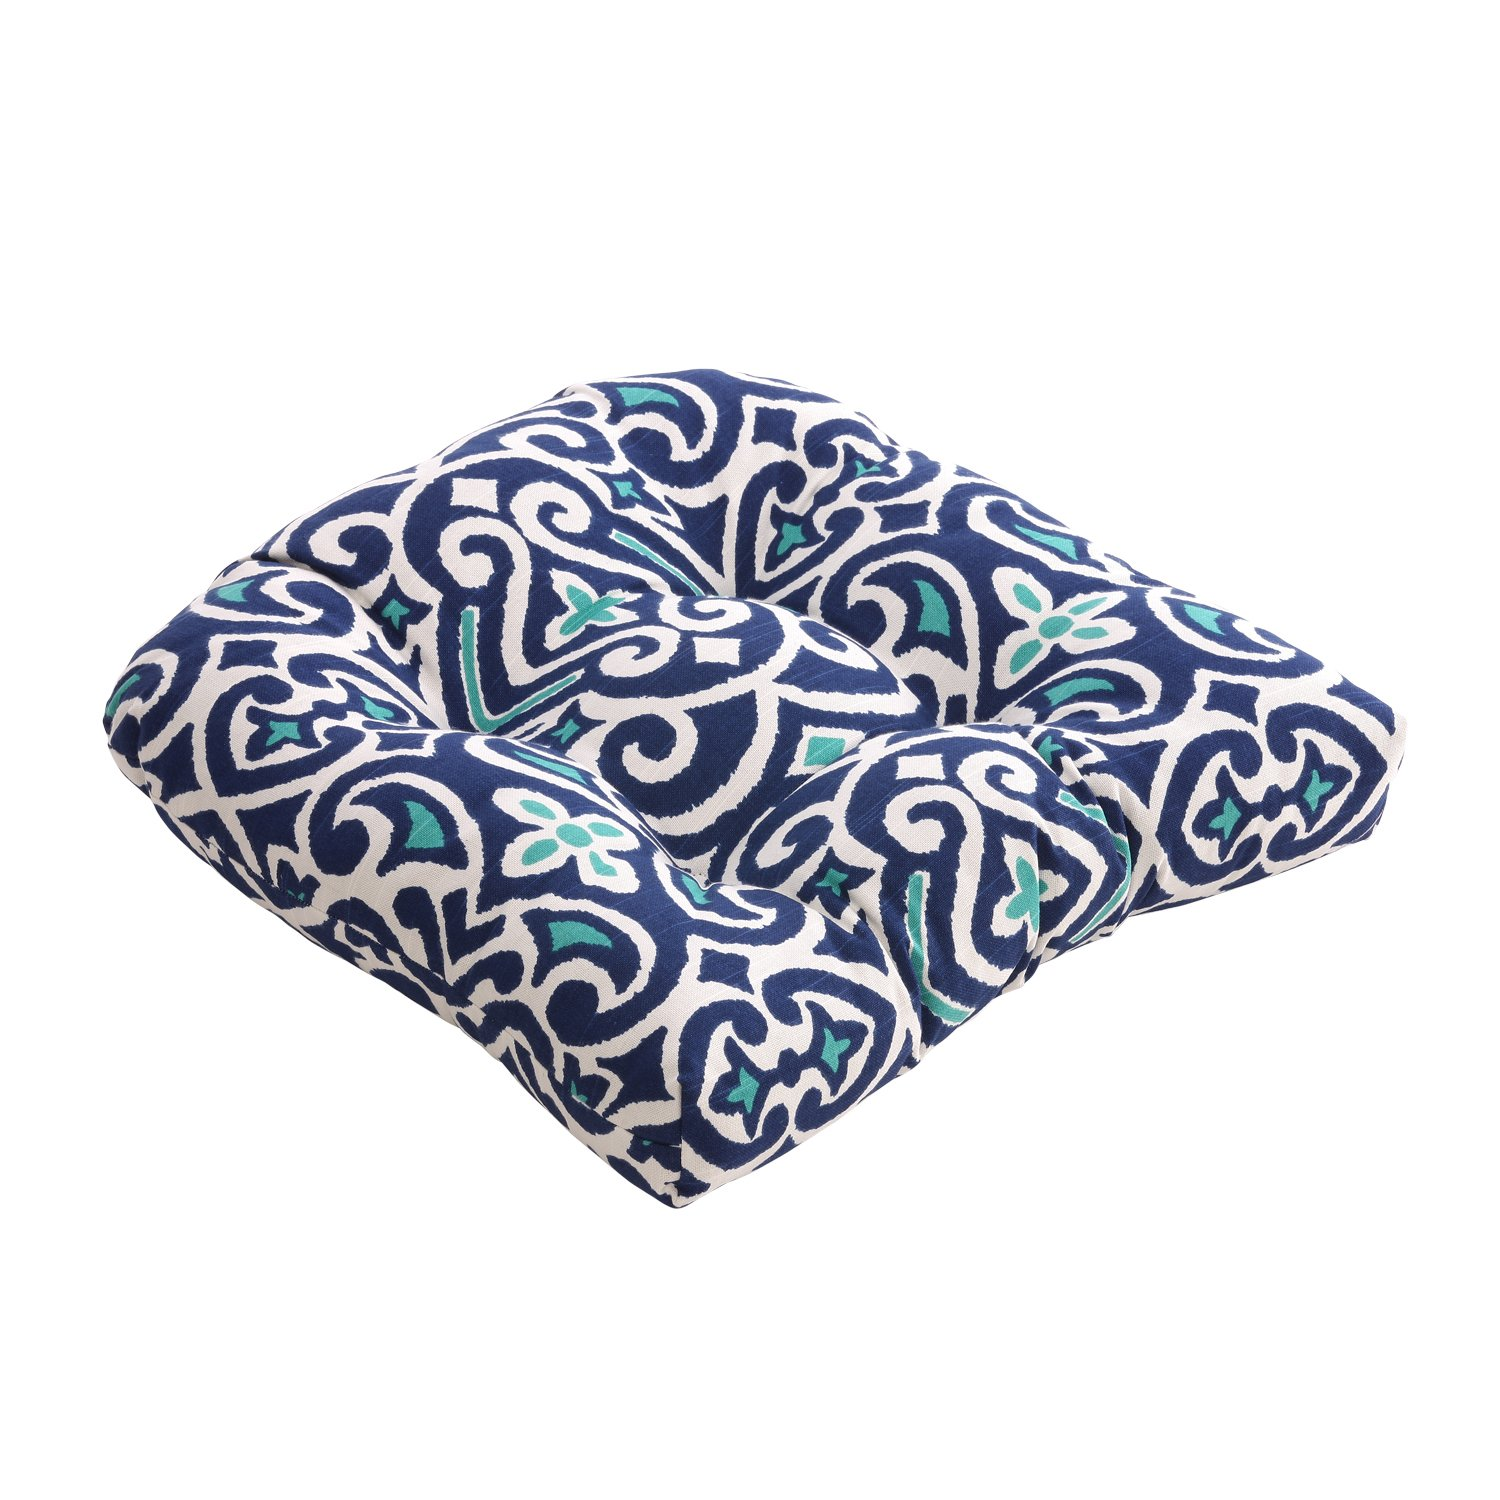 Good Amazon.com: Pillow Perfect Blue/White Damask Chair Cushion: Home U0026 Kitchen